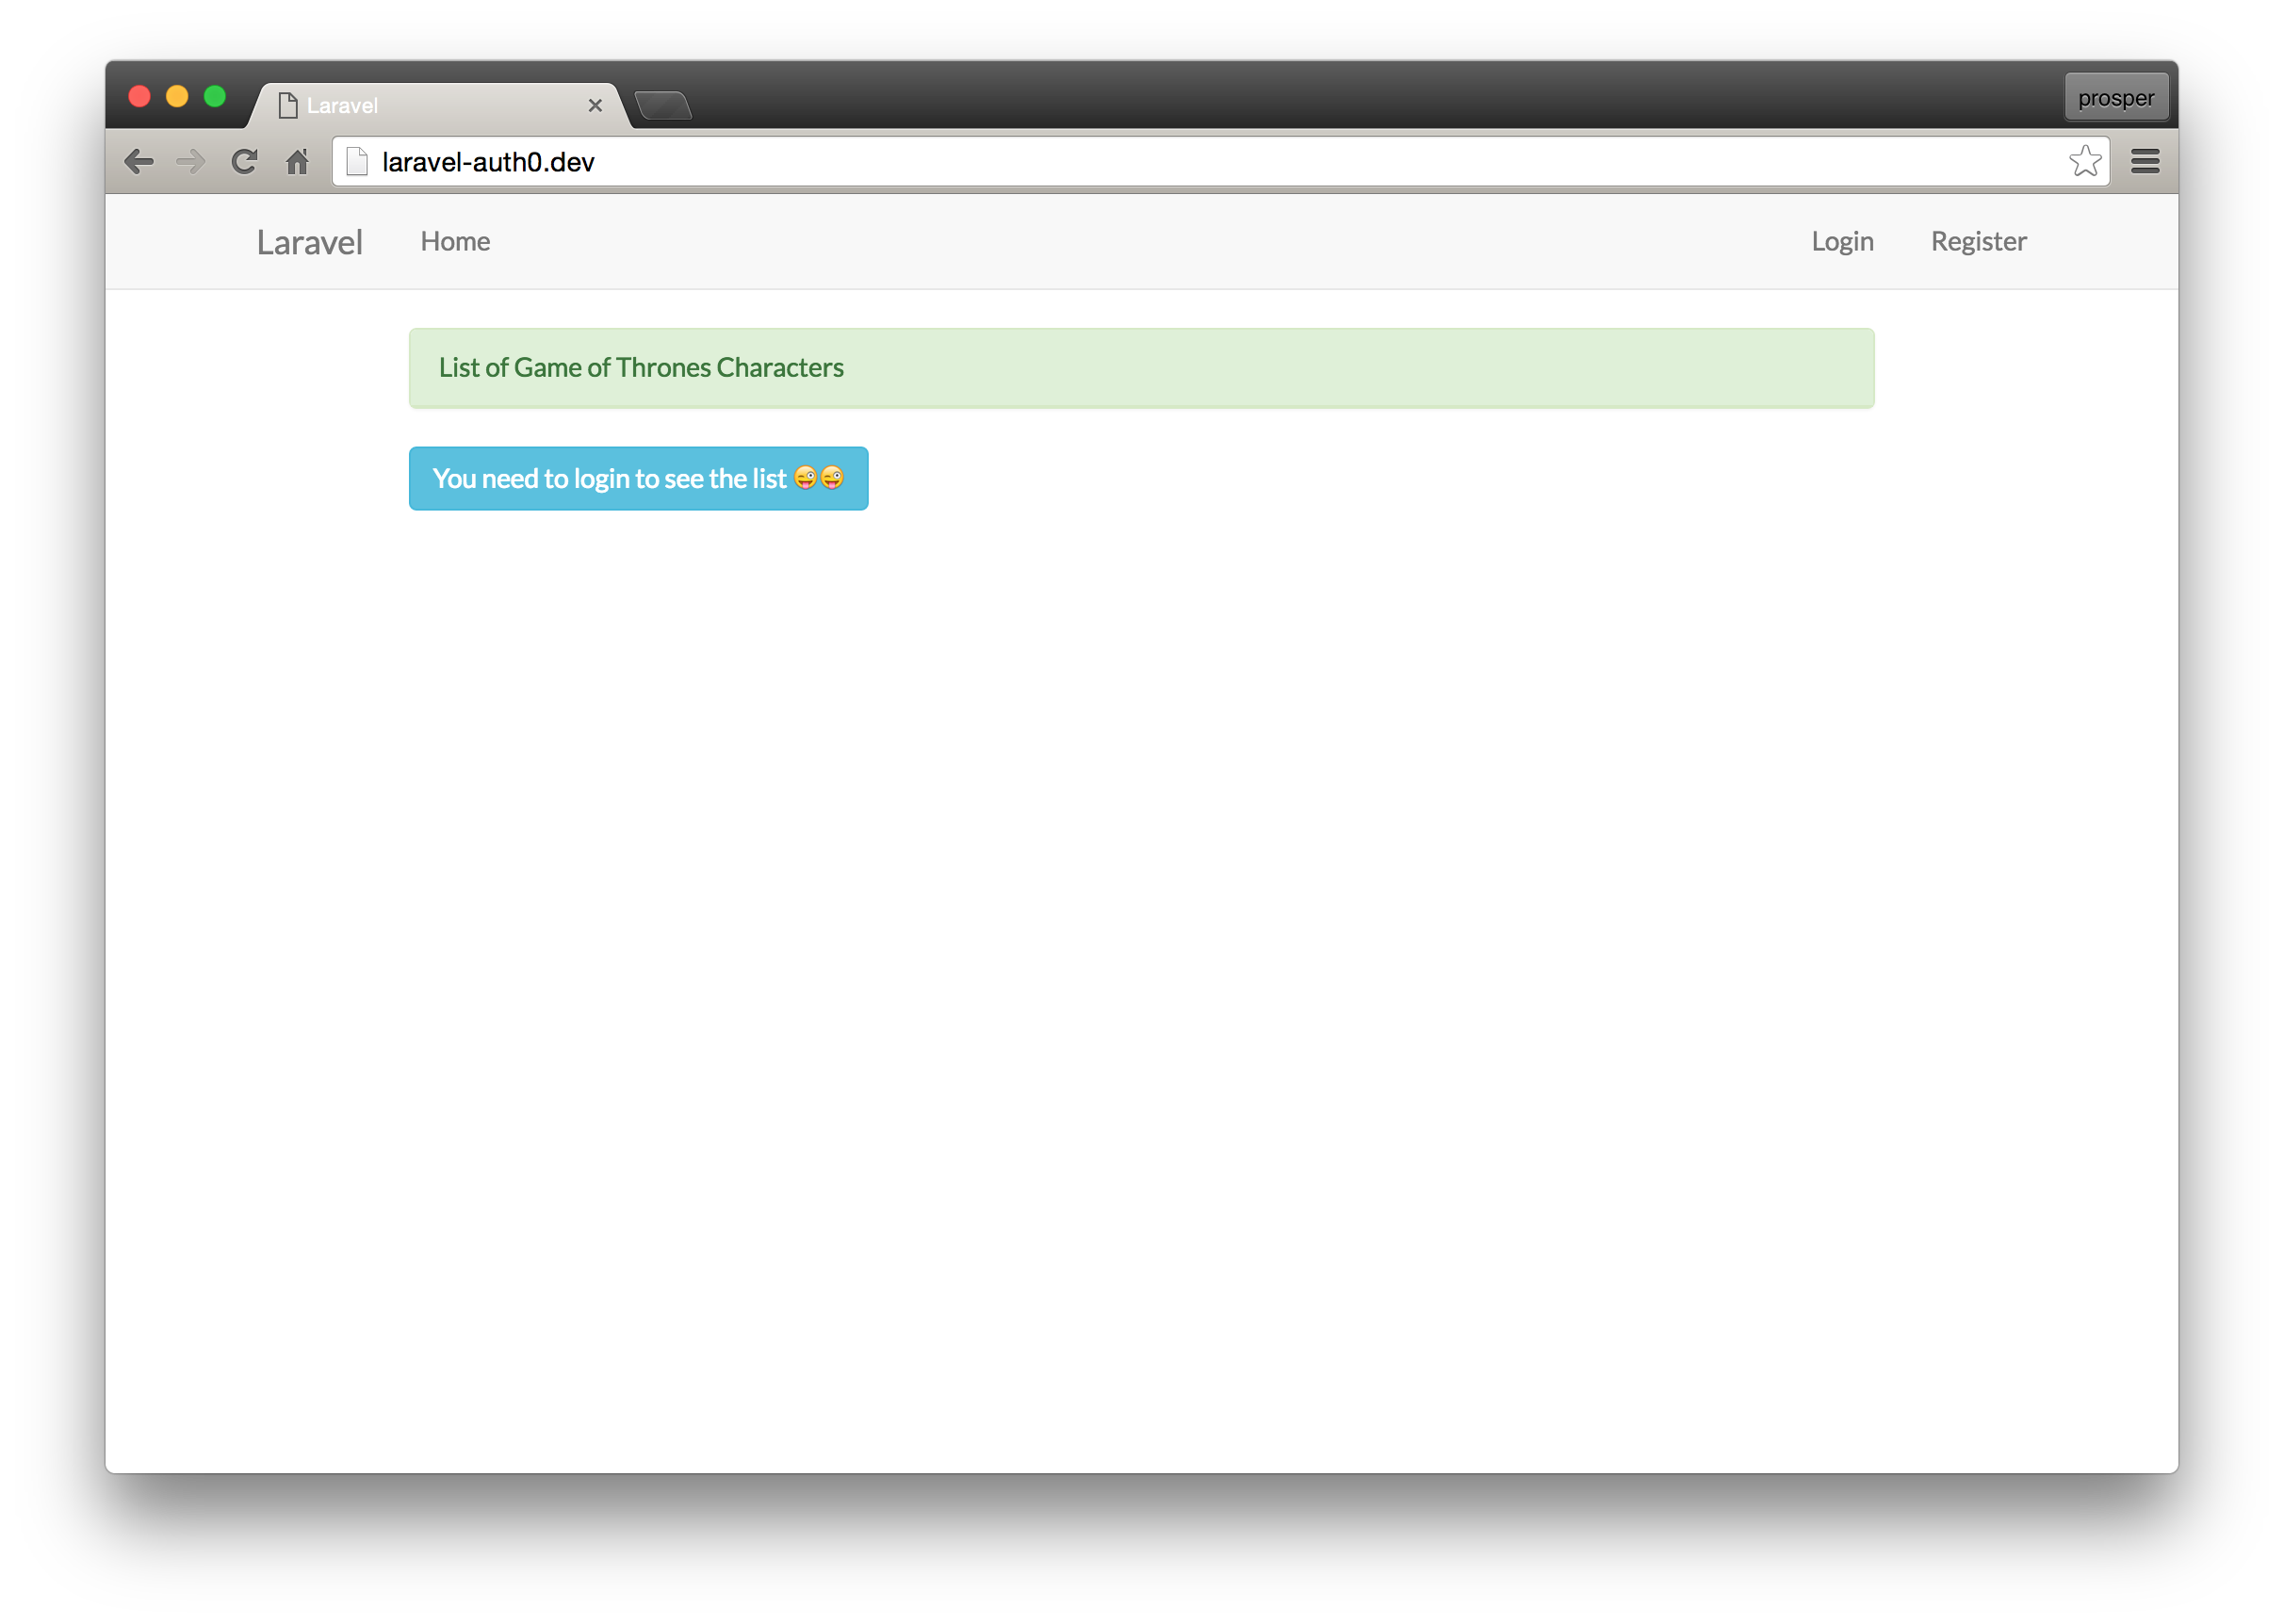 Laravel application localhost home page